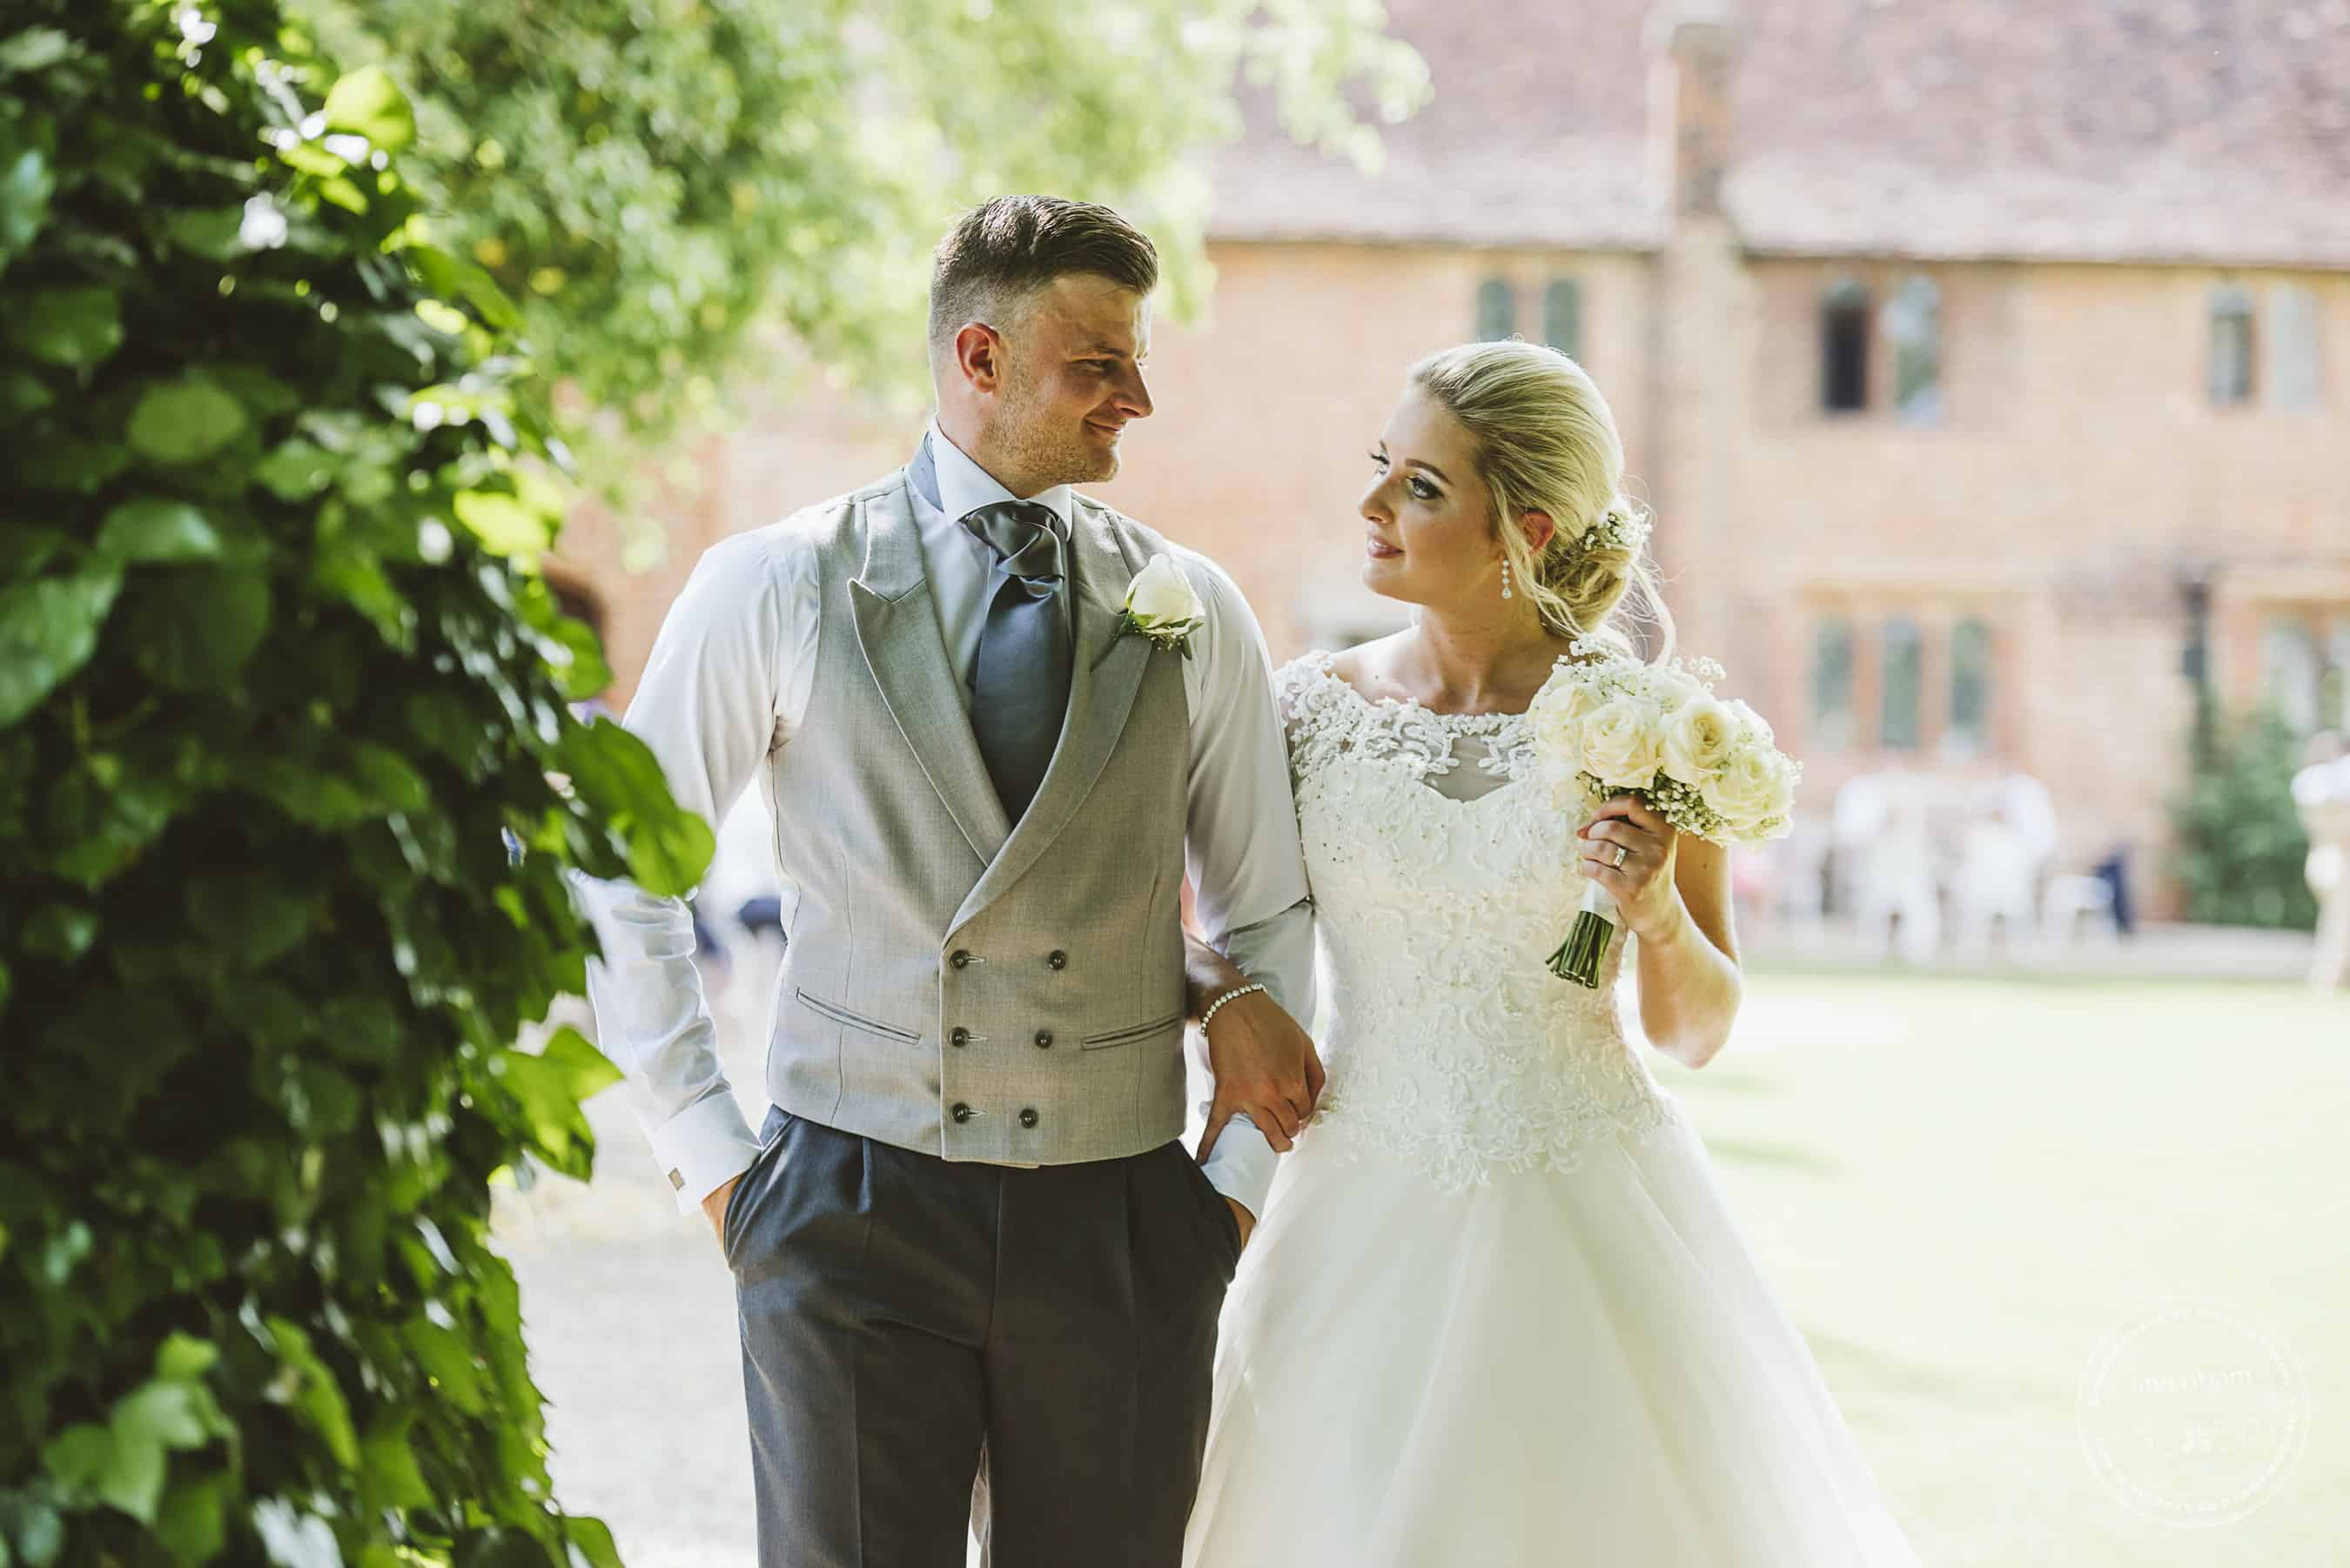 030618 Leez Priory Wedding Photography Lavenham Photographic 068